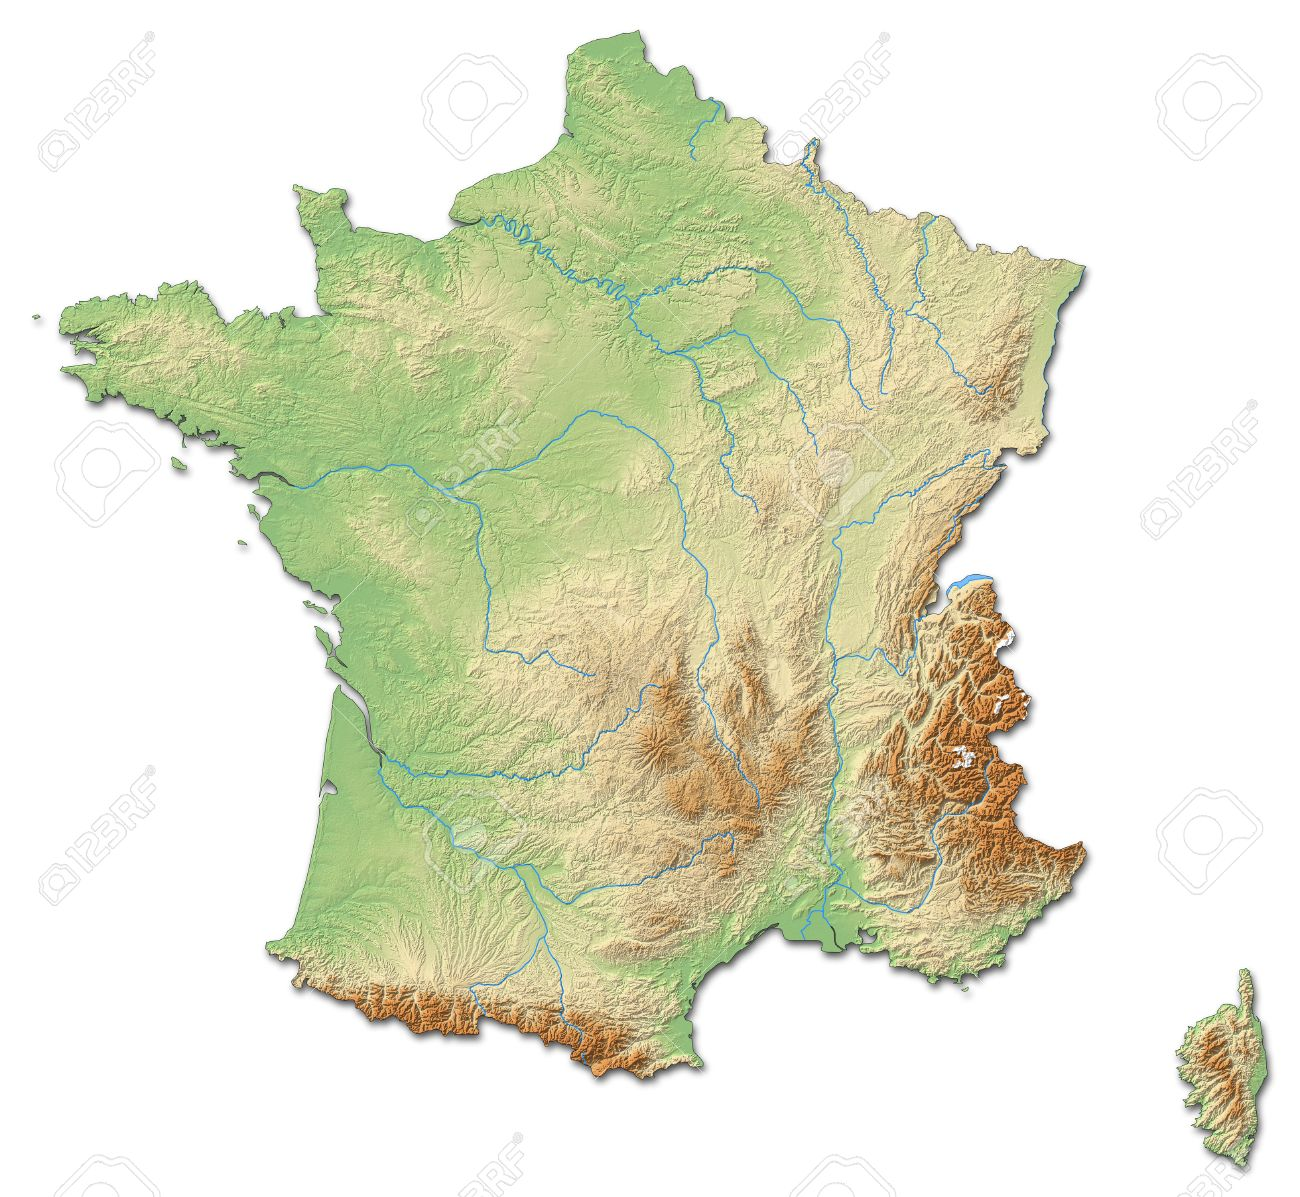 Relief Map Of France With Shaded Relief  Stock Photo  Picture And     Relief map of France with shaded relief  Stock Photo   59583099